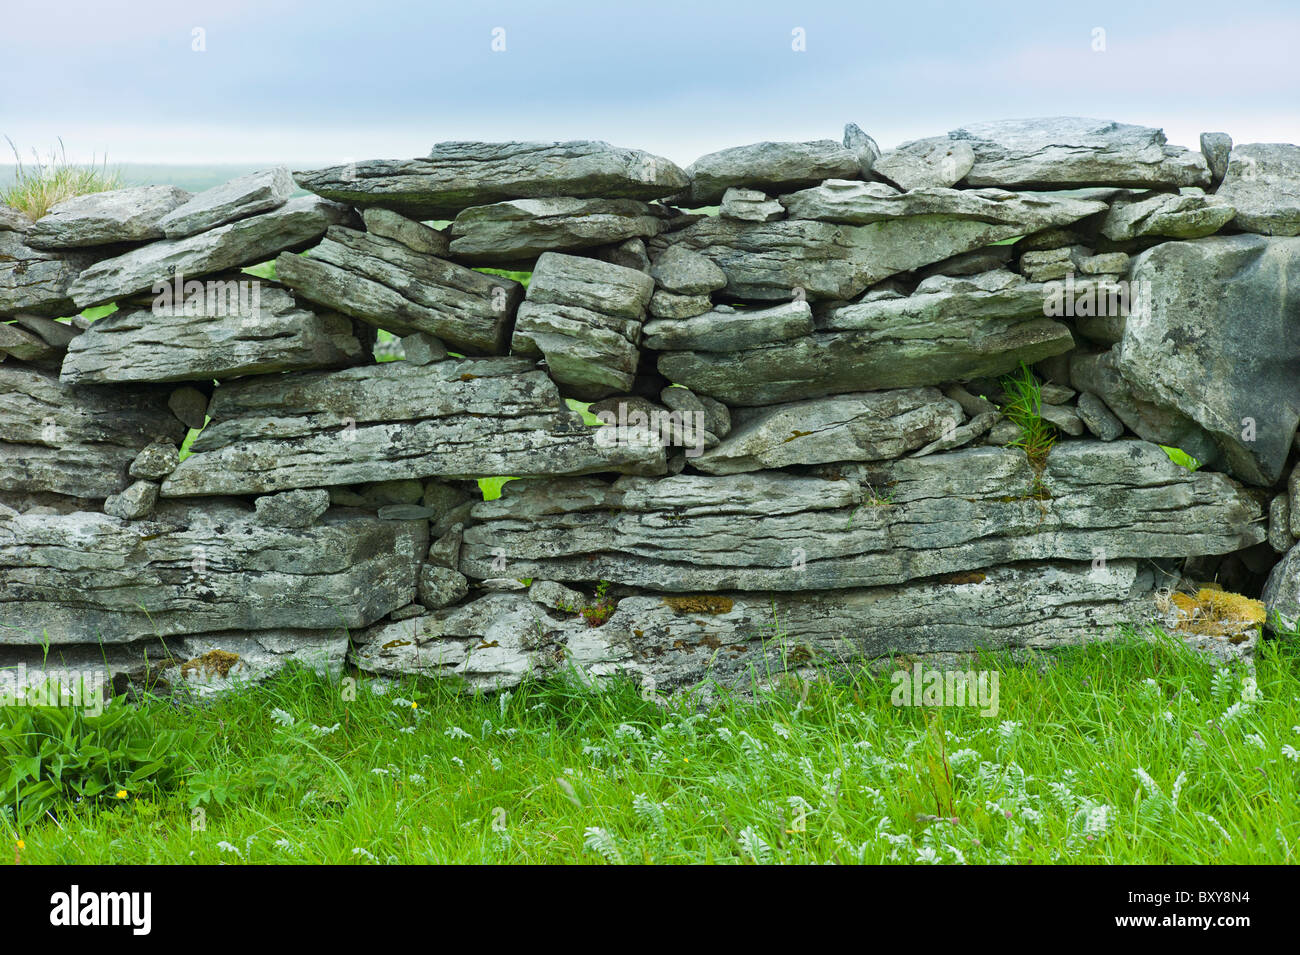 Traditional dry stone wall, stones laid flat, in field in The Burren, County Clare, West of Ireland - Stock Image